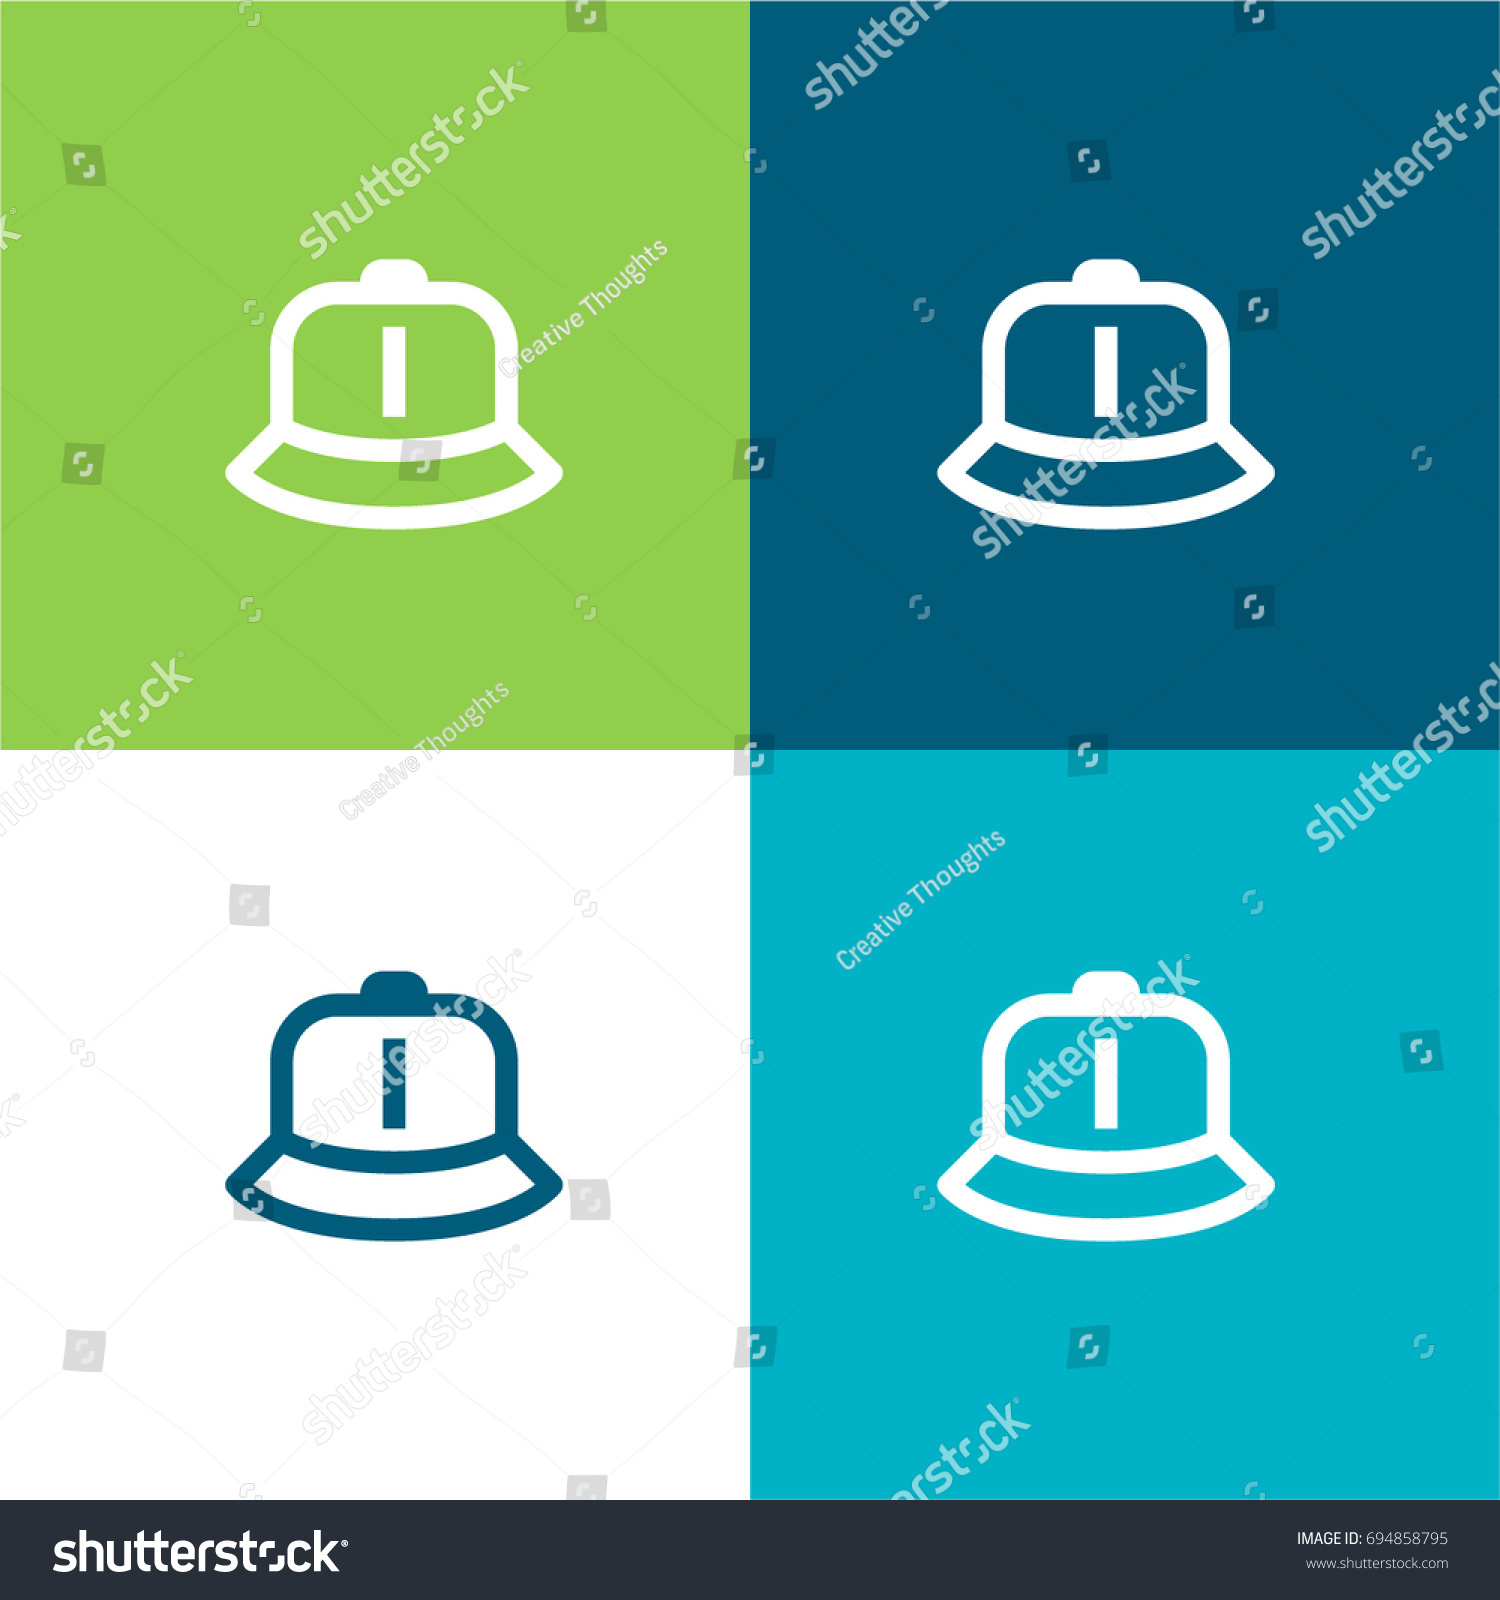 Hat Green Blue Material Color Minimal Stock Vector (Royalty